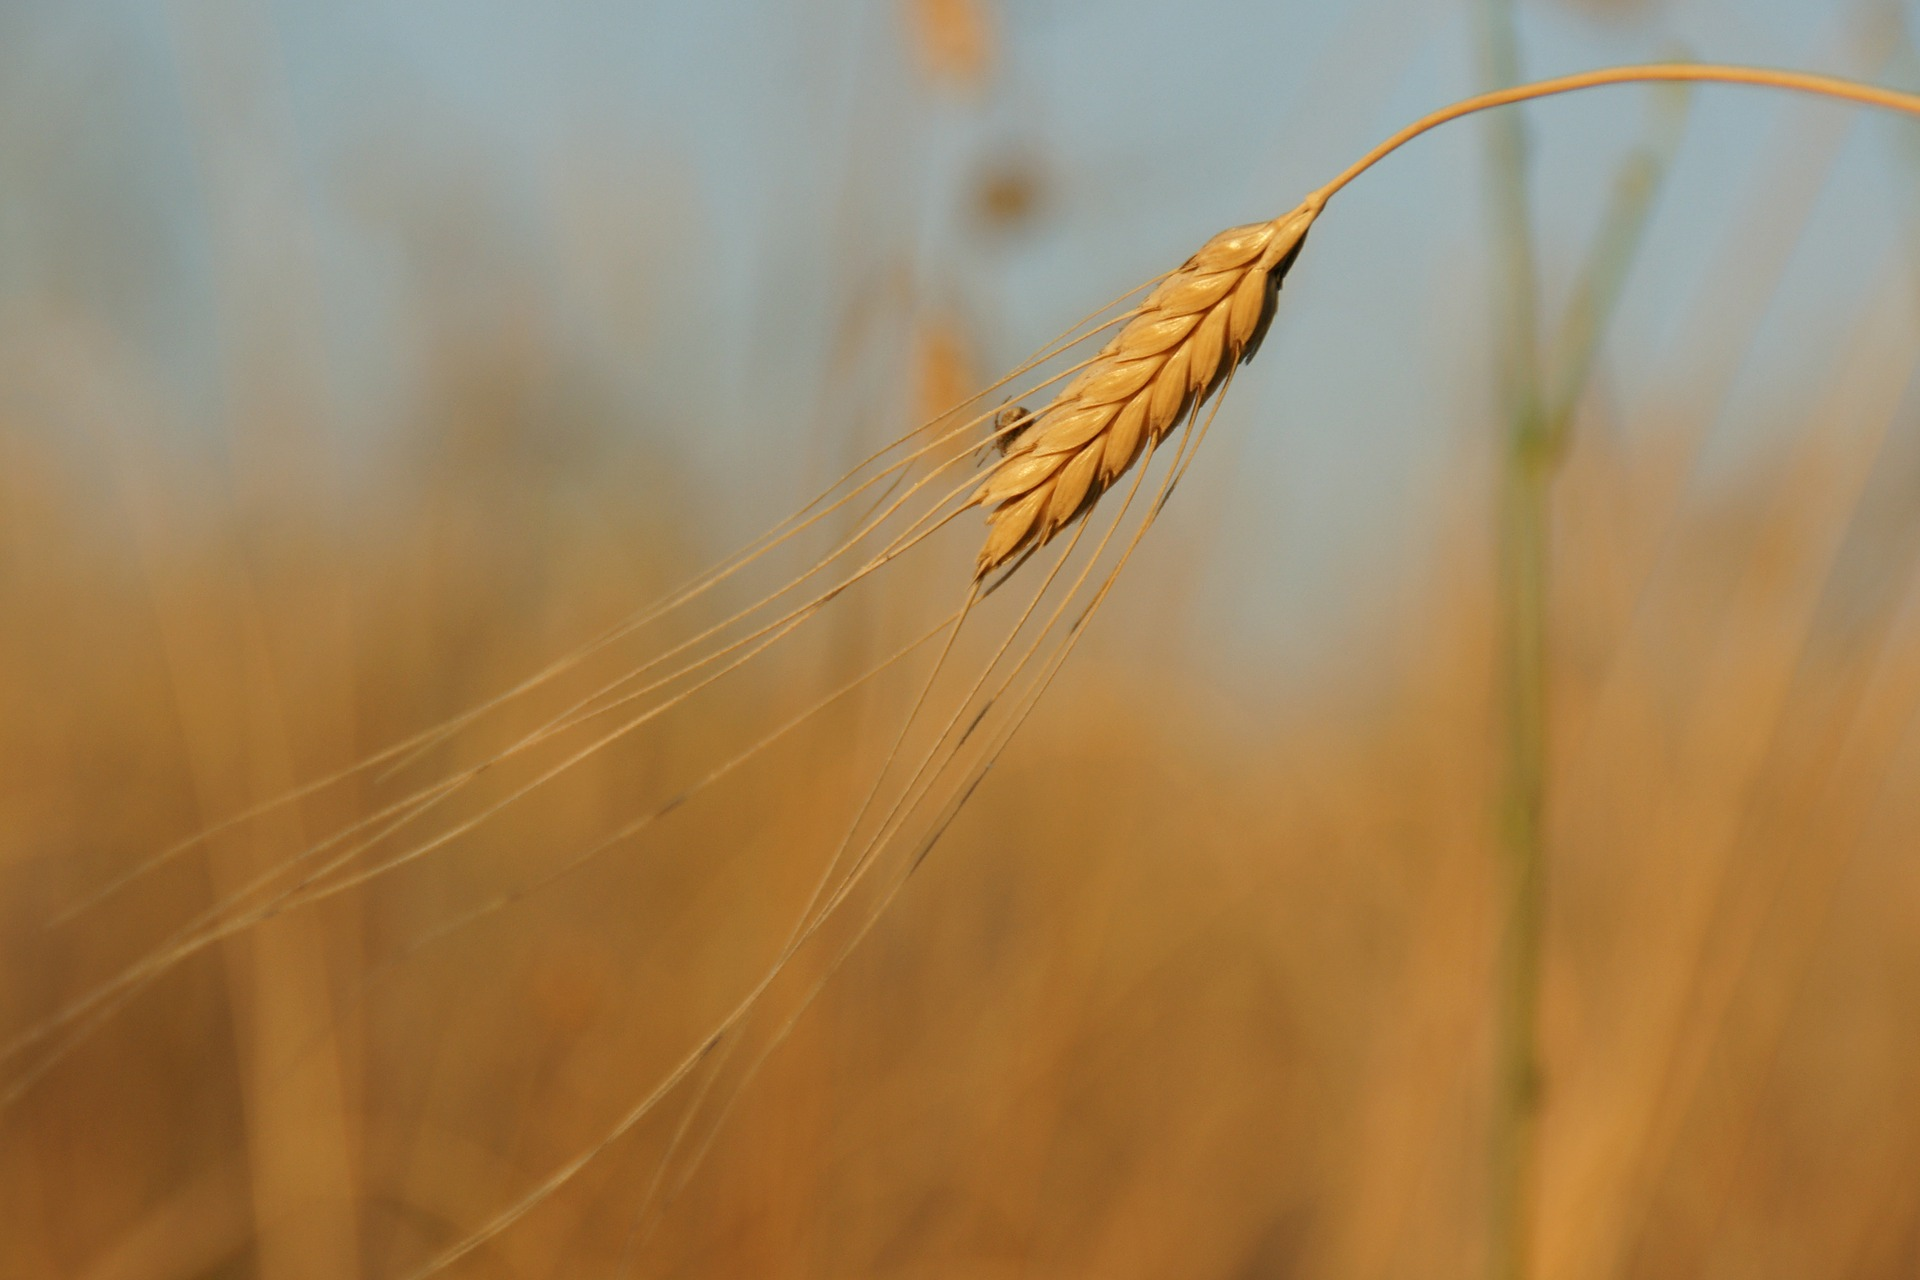 Minor cereals such as einkorn can add to the diversity of our food production.